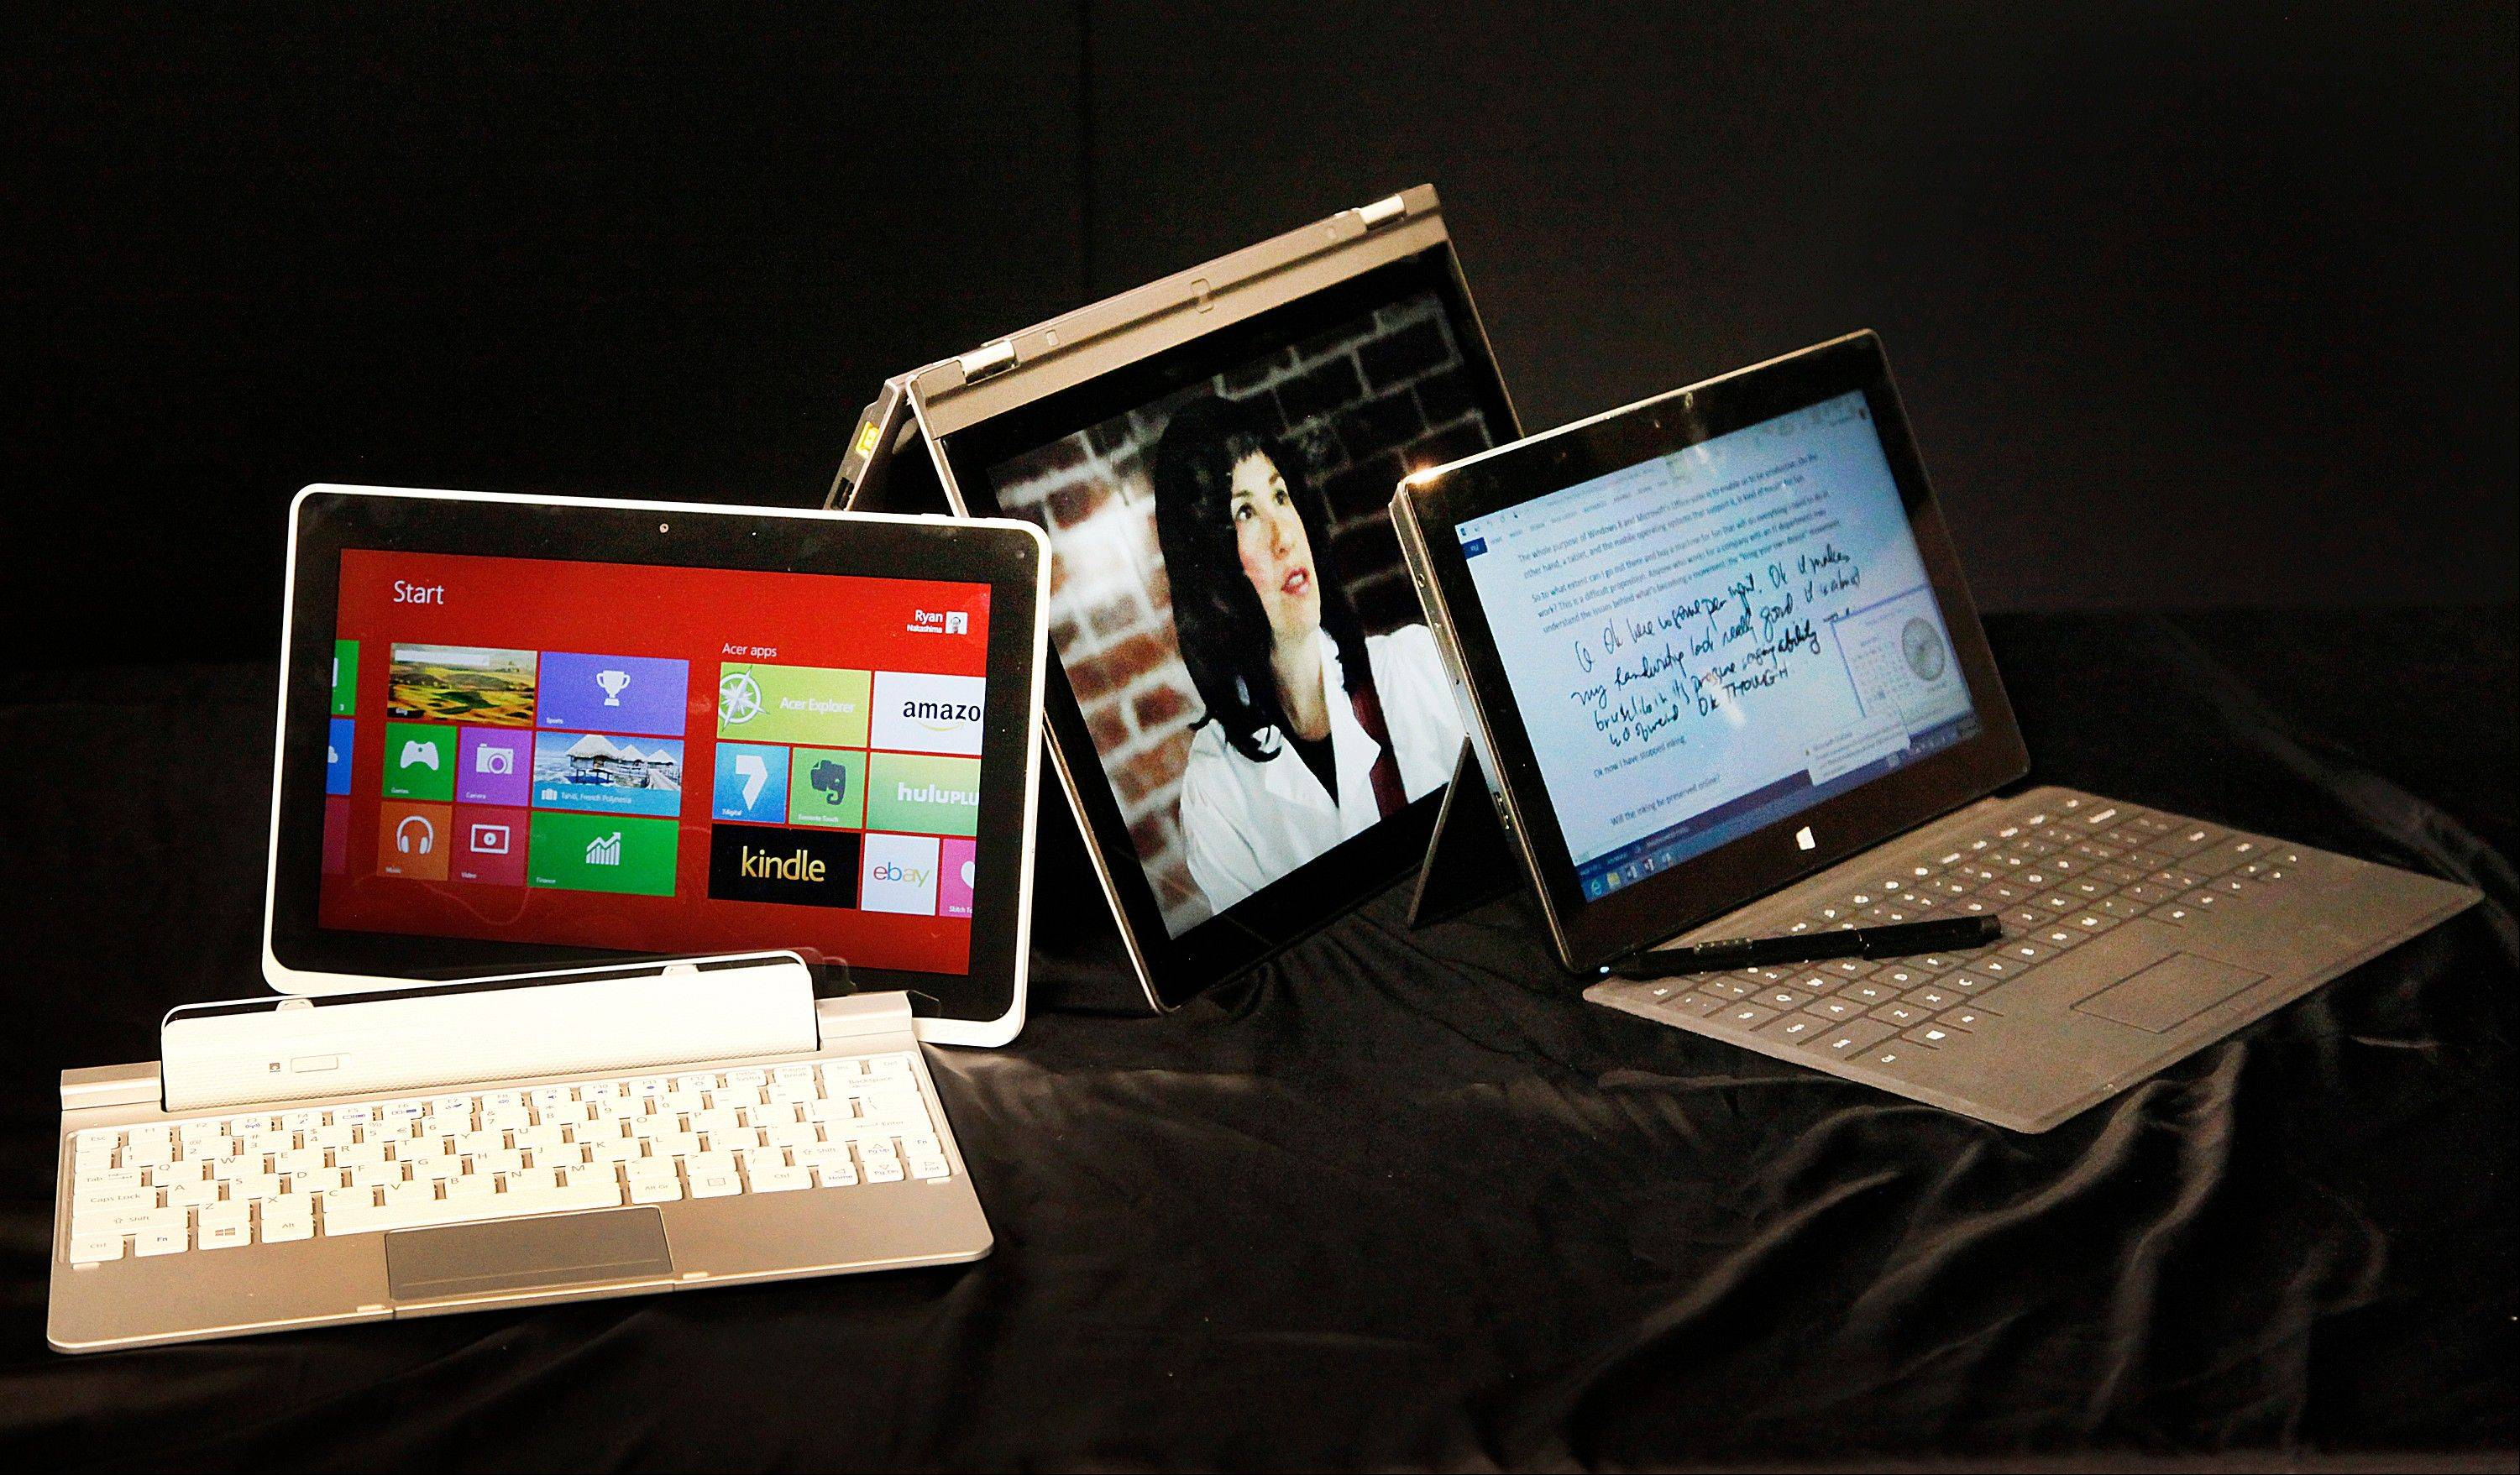 This photo taken Tuesday March 26, 2013 shows three hybrid computers running on Windows 8, from left to right, the Iconia W510 by Acer, the Yoga 13 by Lenovo and the Surface Pro by Microsoft, in Los Angeles. Since Windows 8ís debut in October, there have been a range of hot-looking devices that try to combine elements of tablets and traditional PCs.